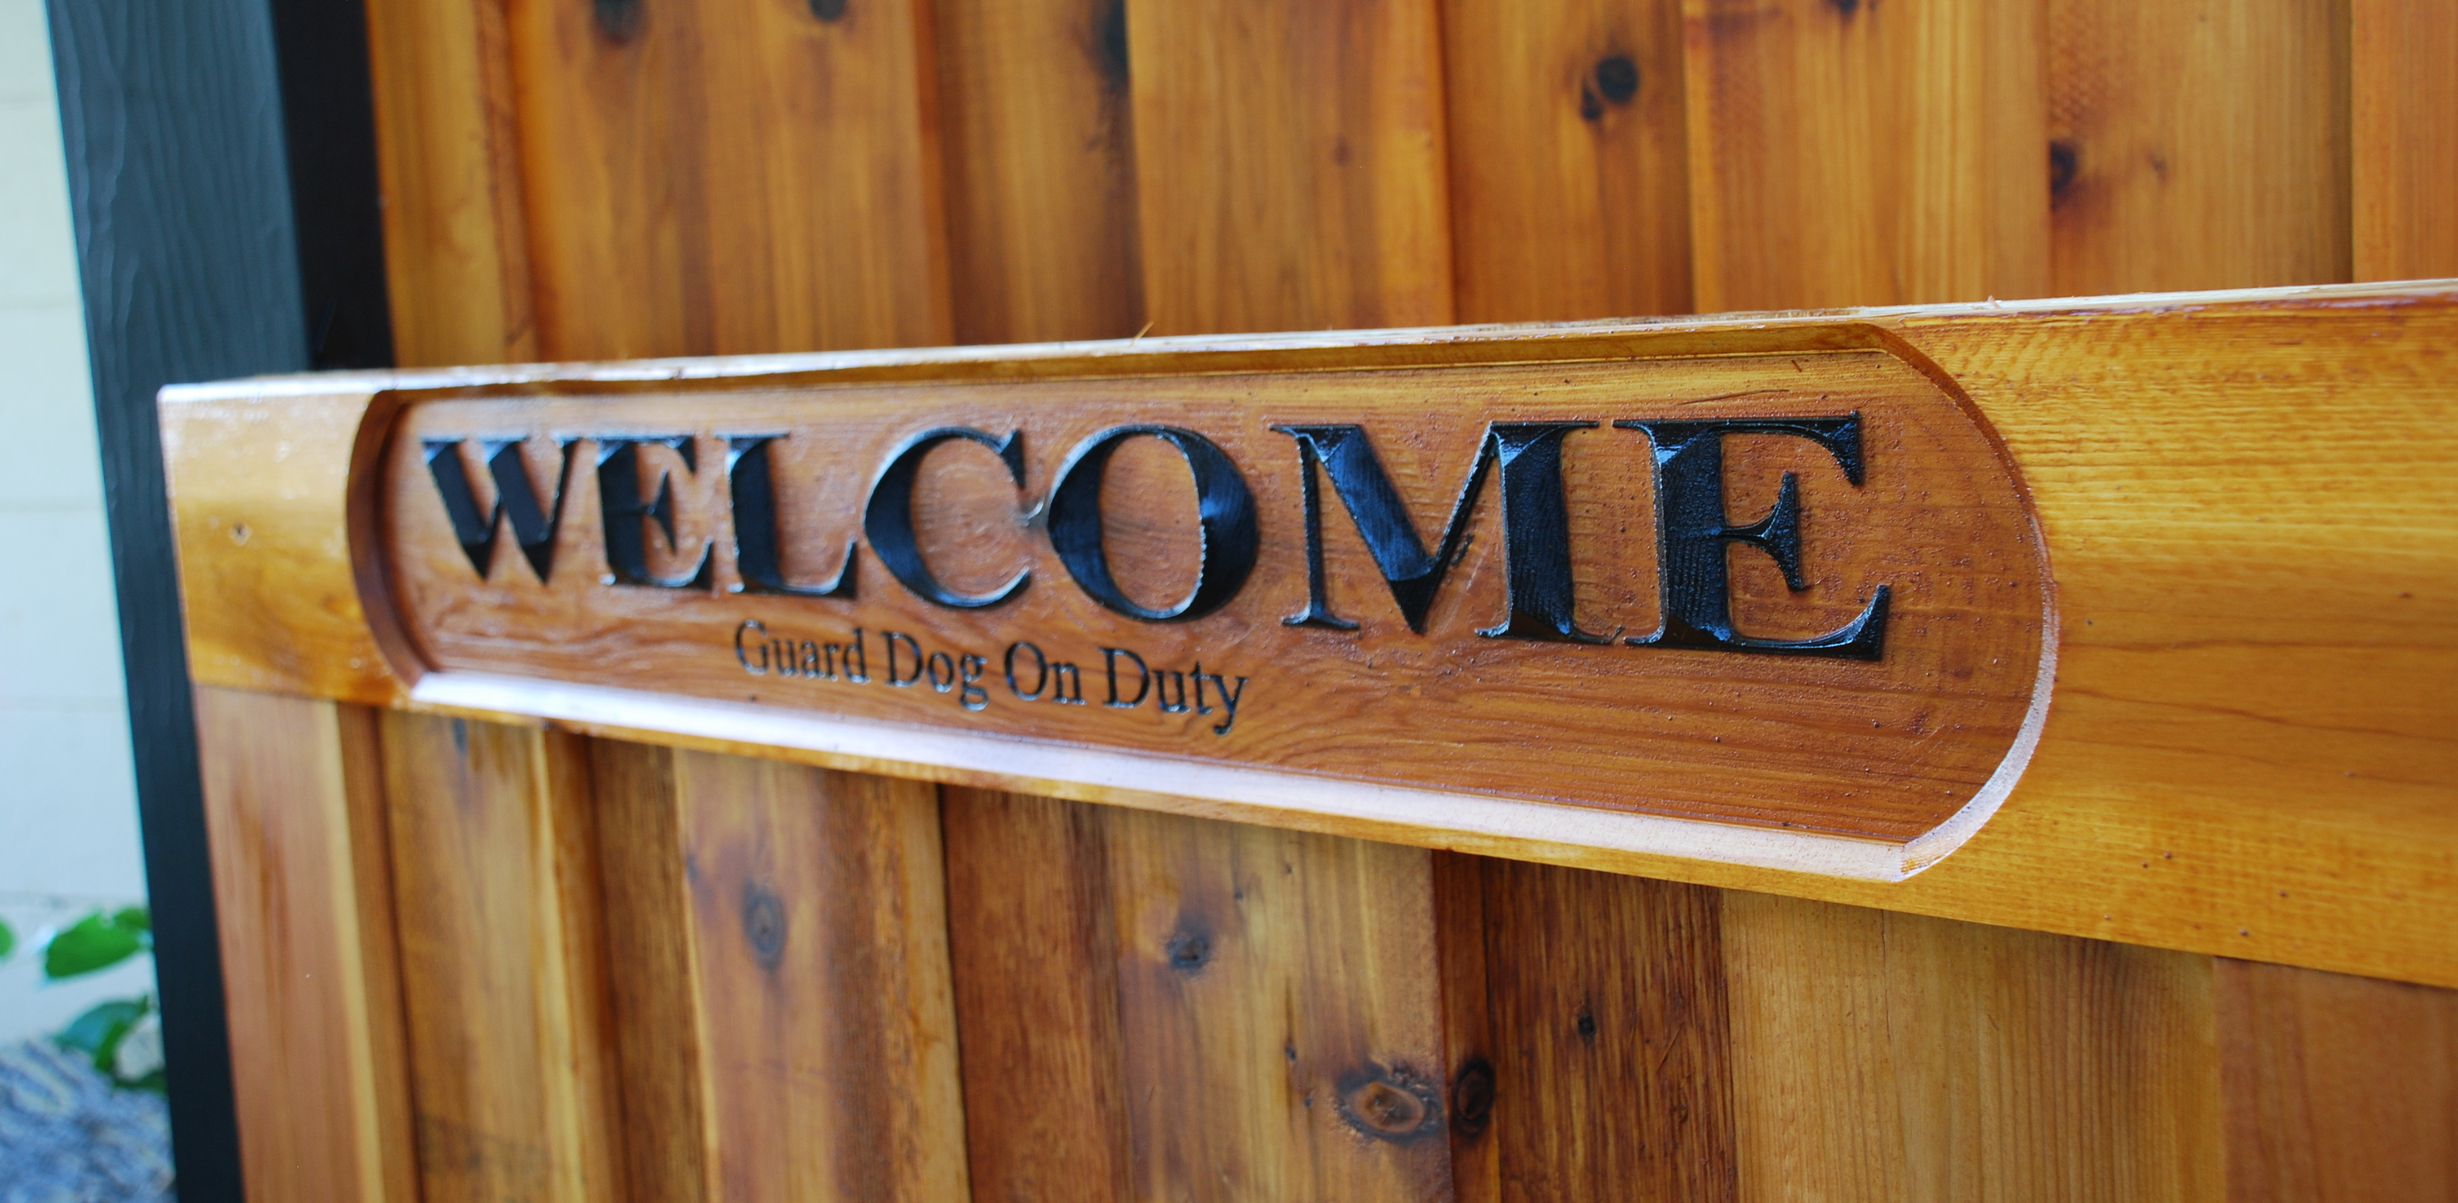 This sign uses the Pocketing technique in combination with a V shaped router bit to create 'prism' style lettering. This sign was cut into a Western Red Cedar board and the lettering was hand painted before it was mounted to the gate.